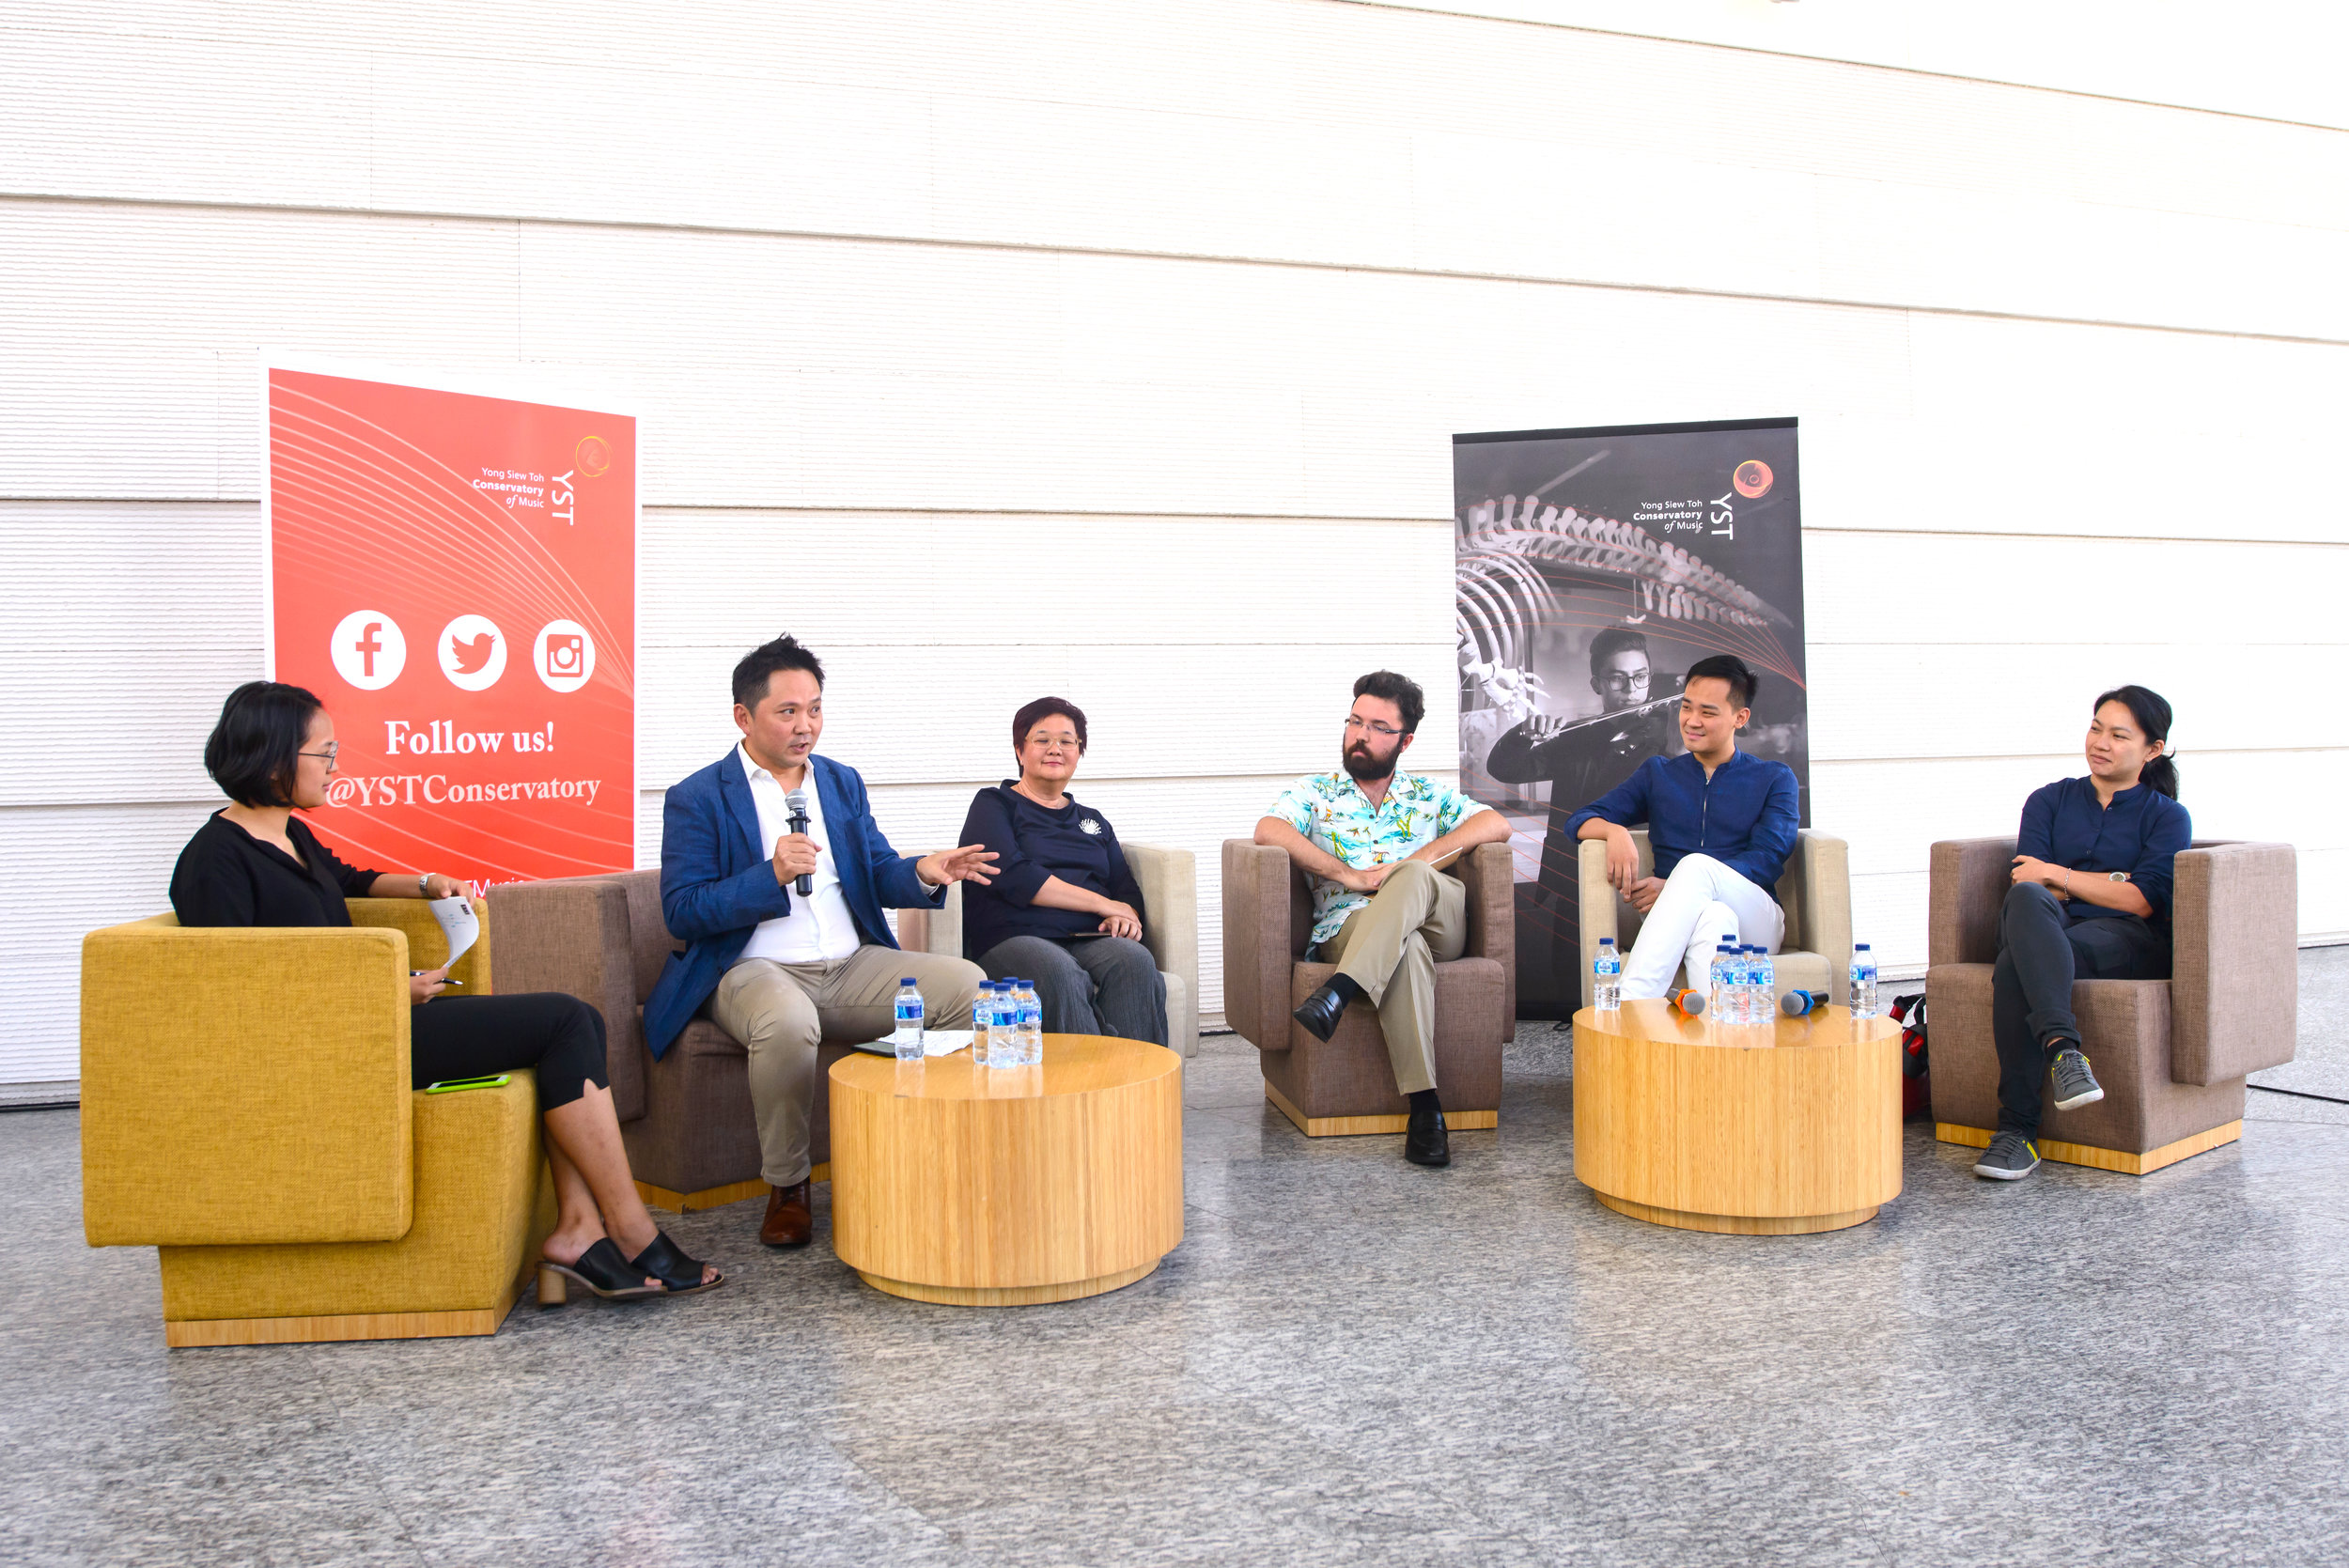 One of the  Voyage  panel discussions featured speakers (from right) Christel Hon, Darius Lim, Lawrence Holmefjord-Sarabi, Mrs Rebecca Chew and Dr Sydney Tan. The session examined Singapore's creative landscape and was moderated by Stasha Wong ('18, RAS) (left).